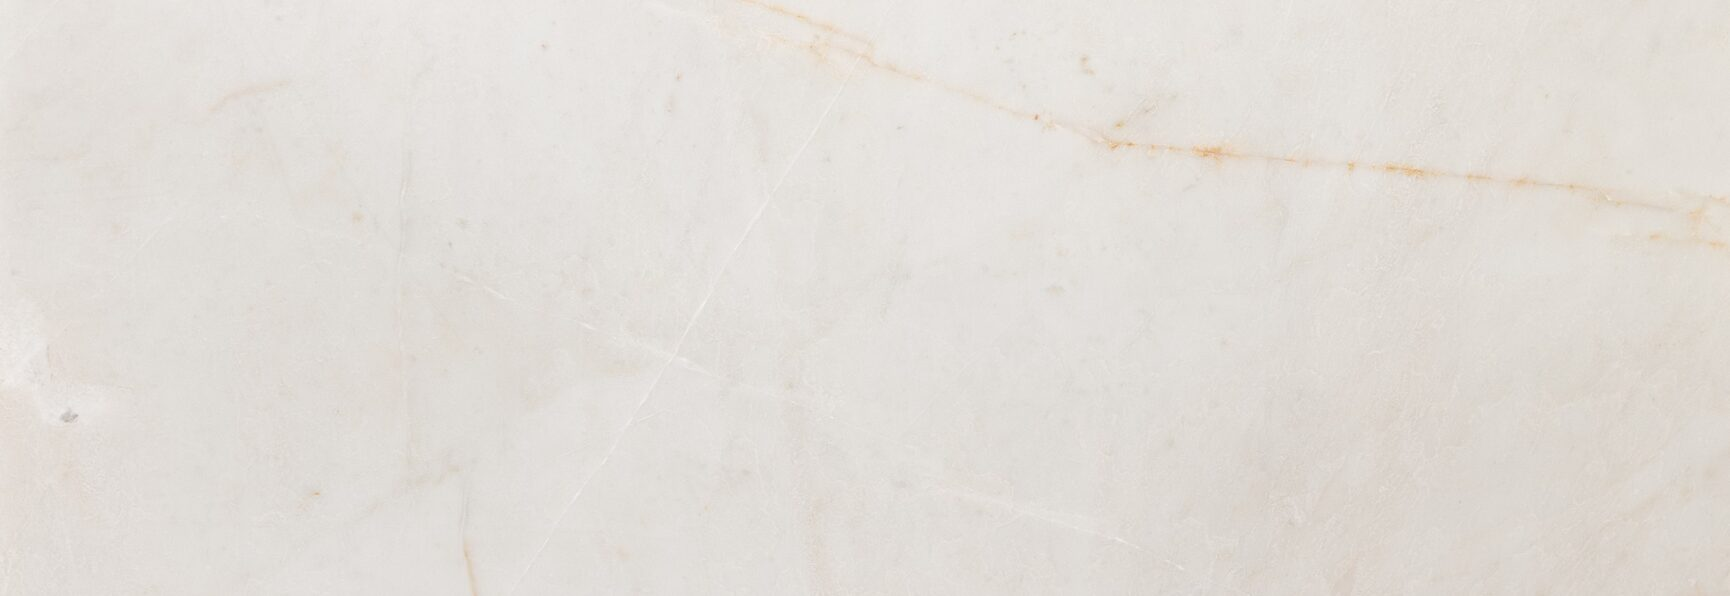 Artic White – Estremoz Marble from Greece